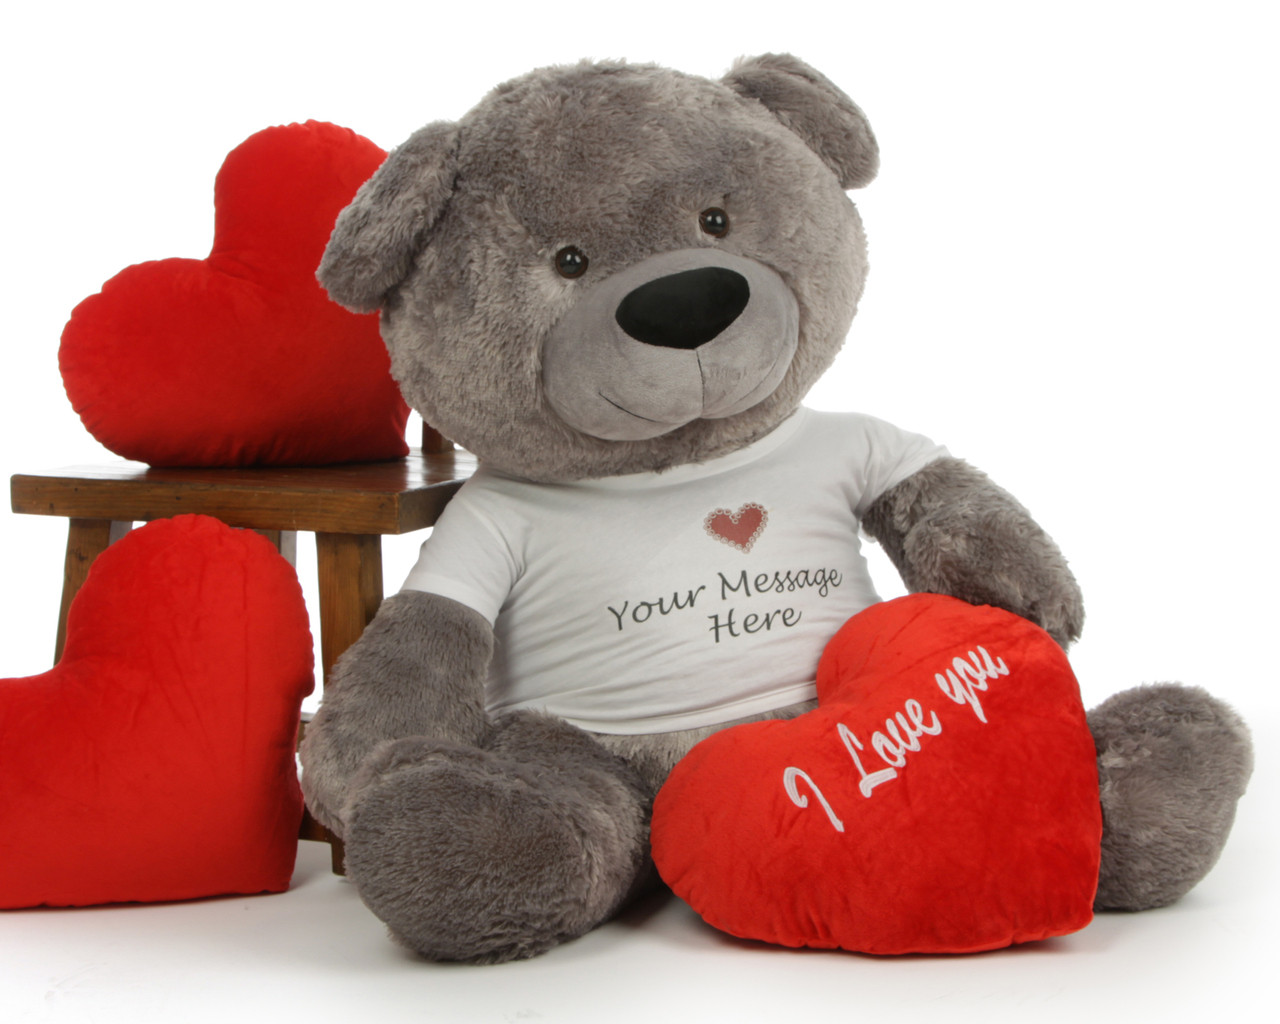 diamond shags personalized valentines day teddy bear with i love you heart pillow - Giant Teddy Bear For Valentines Day